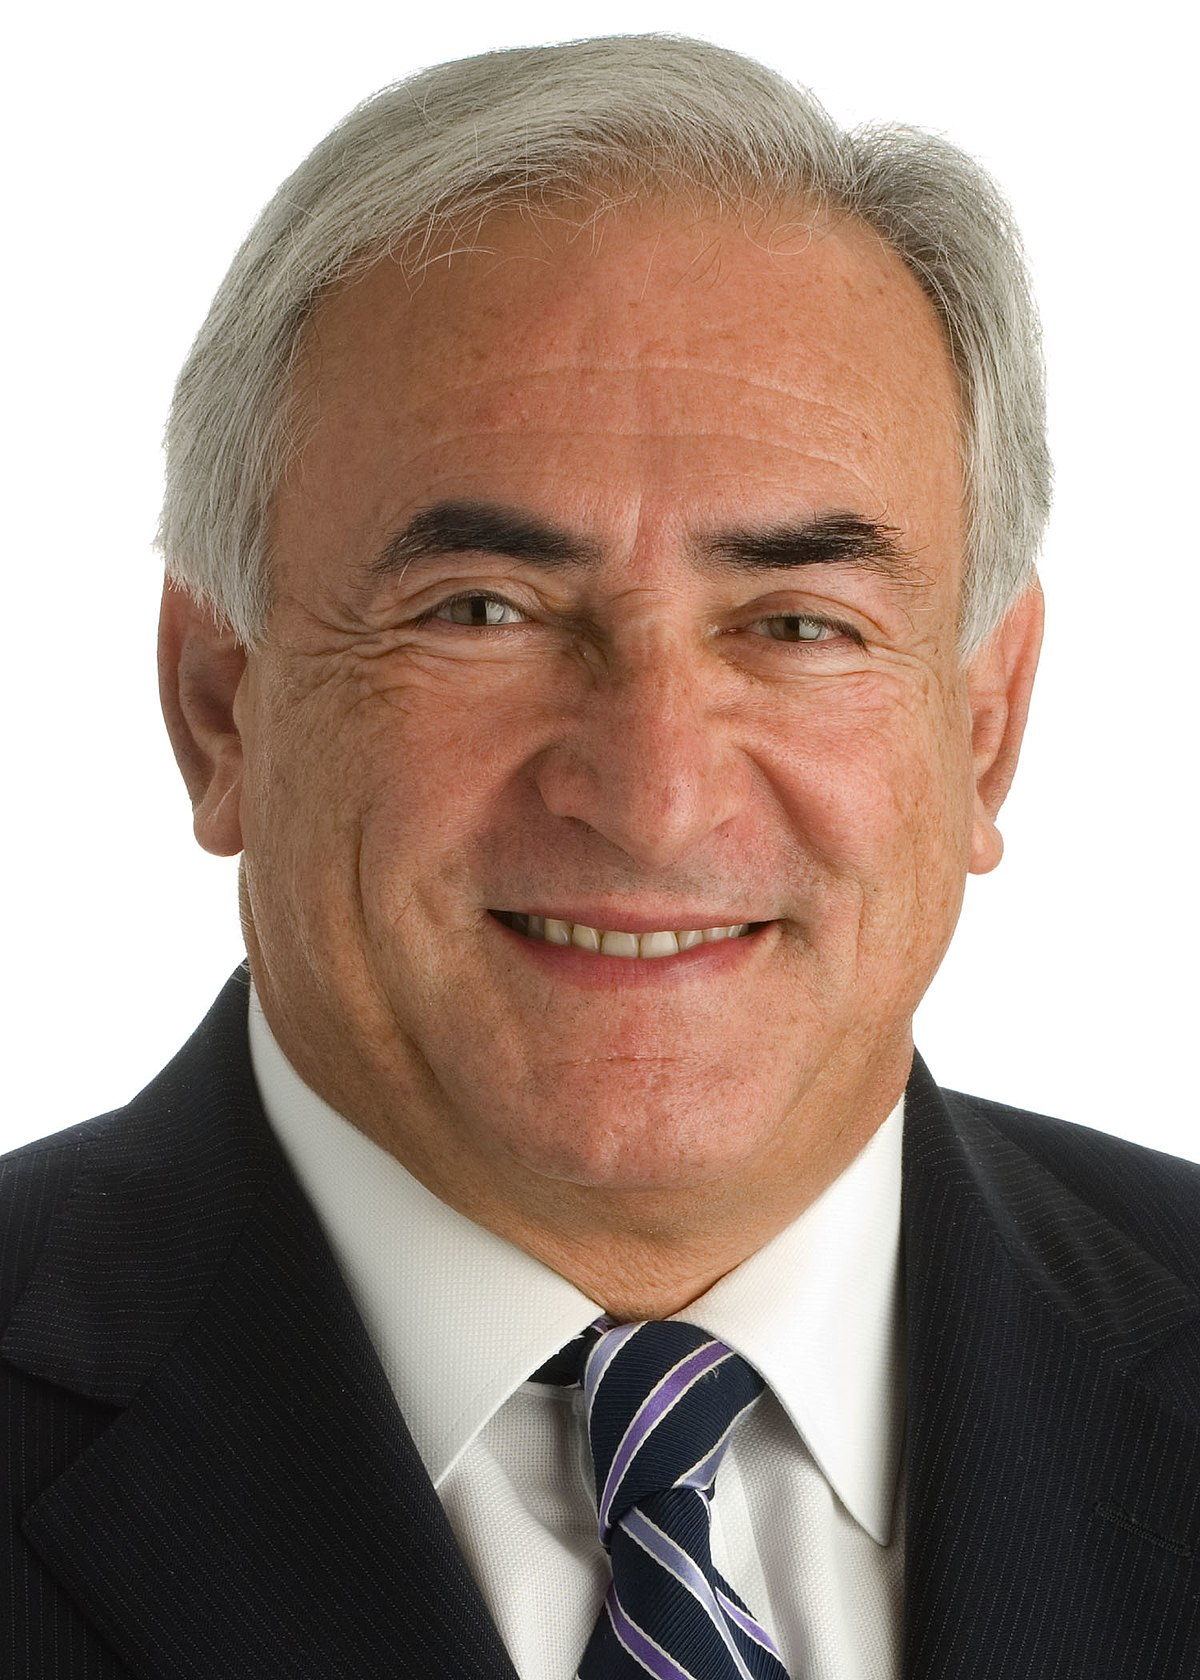 Dominique Strauss-Kahn – Wikipedia